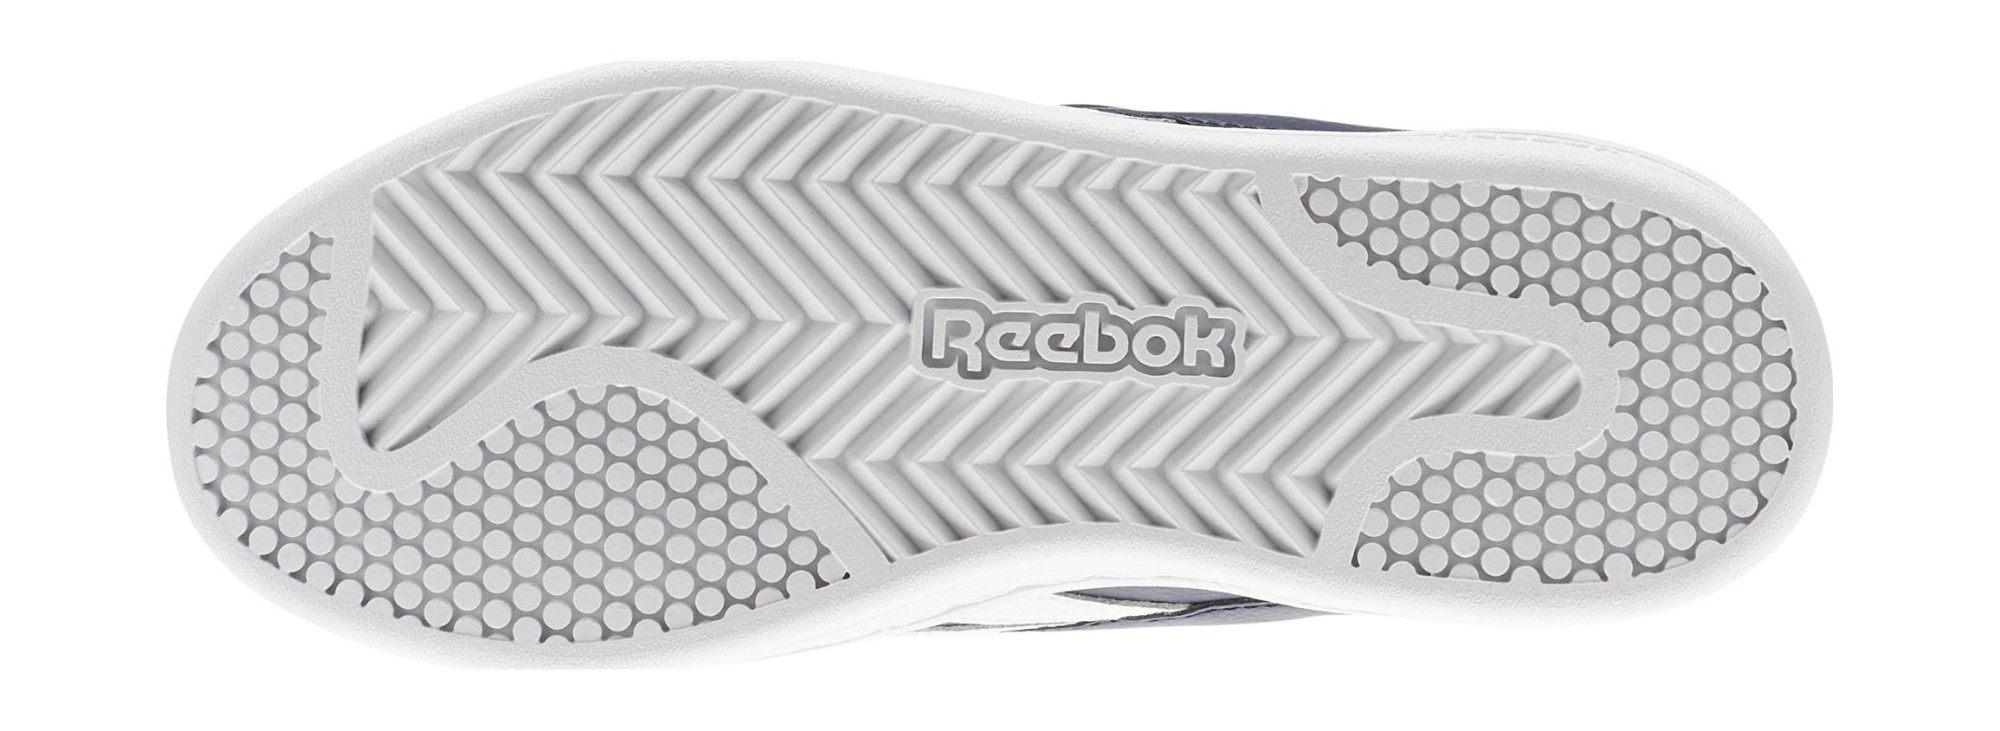 fb9d9da4a91 ... Reebok Royal Prime ALT Navy Primal Red White ...